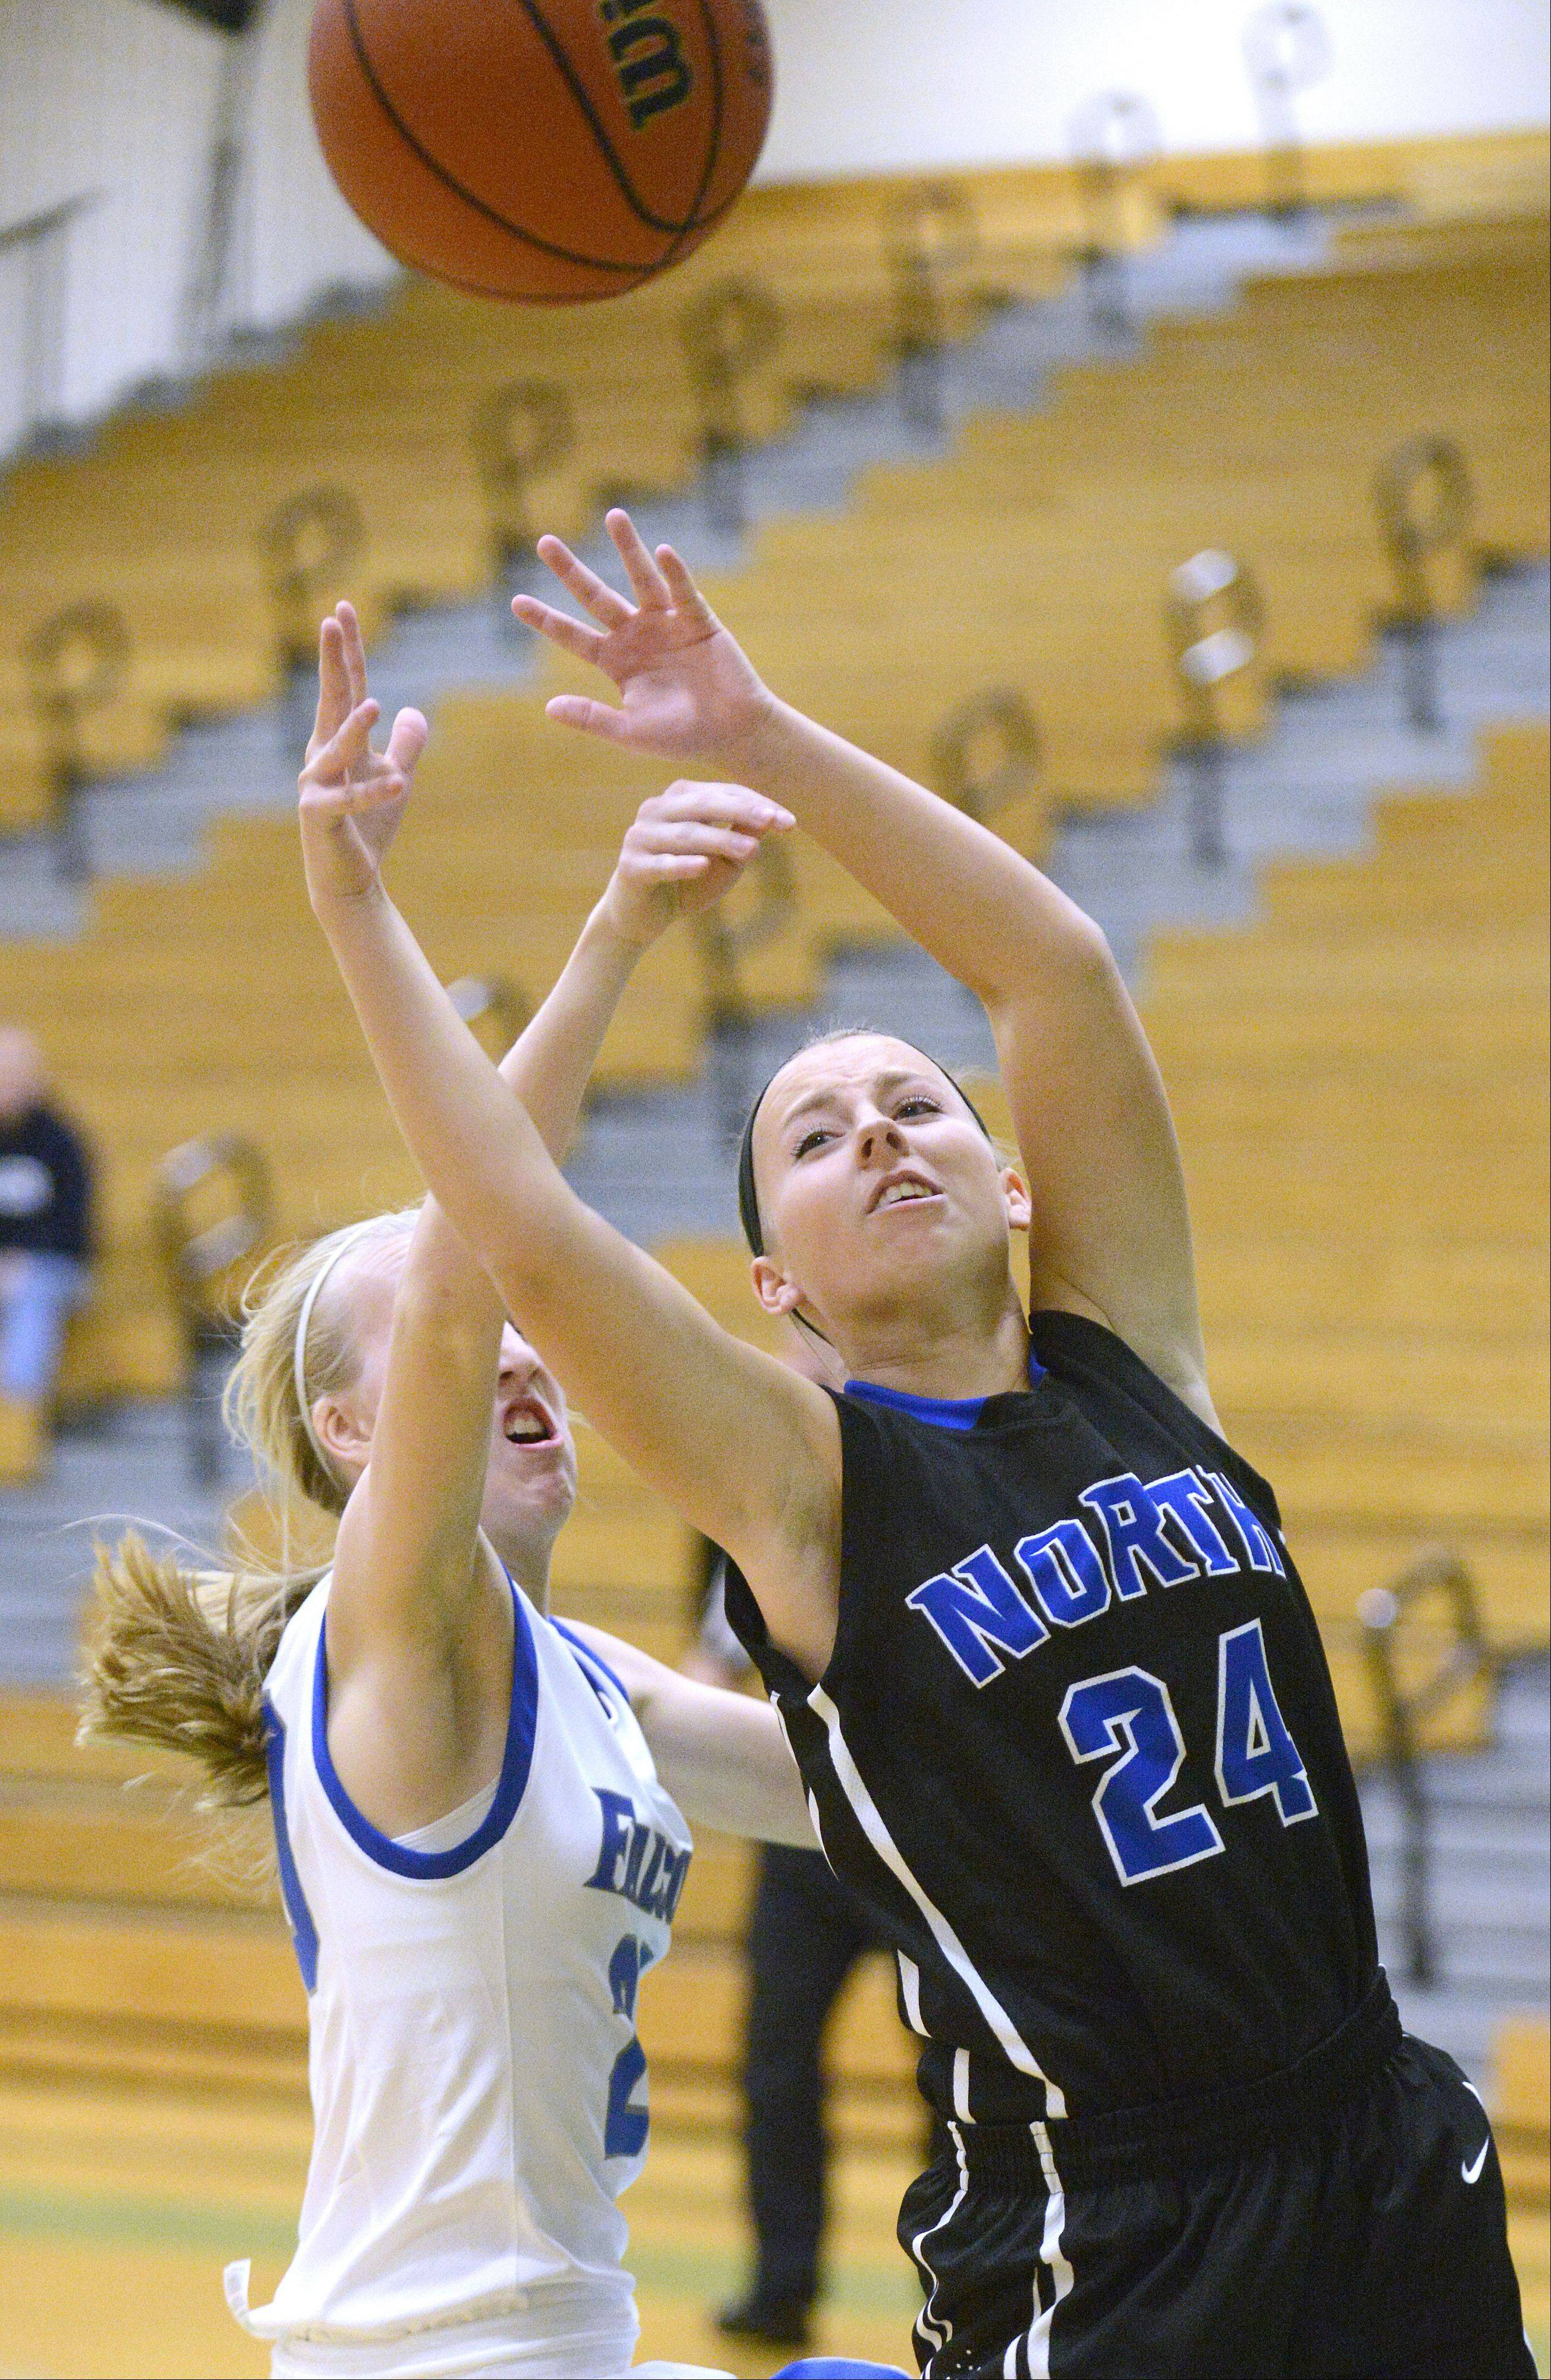 Wheaton North's Abby Tiesman knocks the ball out of the hands of St. Charles North's Allie Reed as she goes up for the hoop in the first quarter on Friday, November 22.